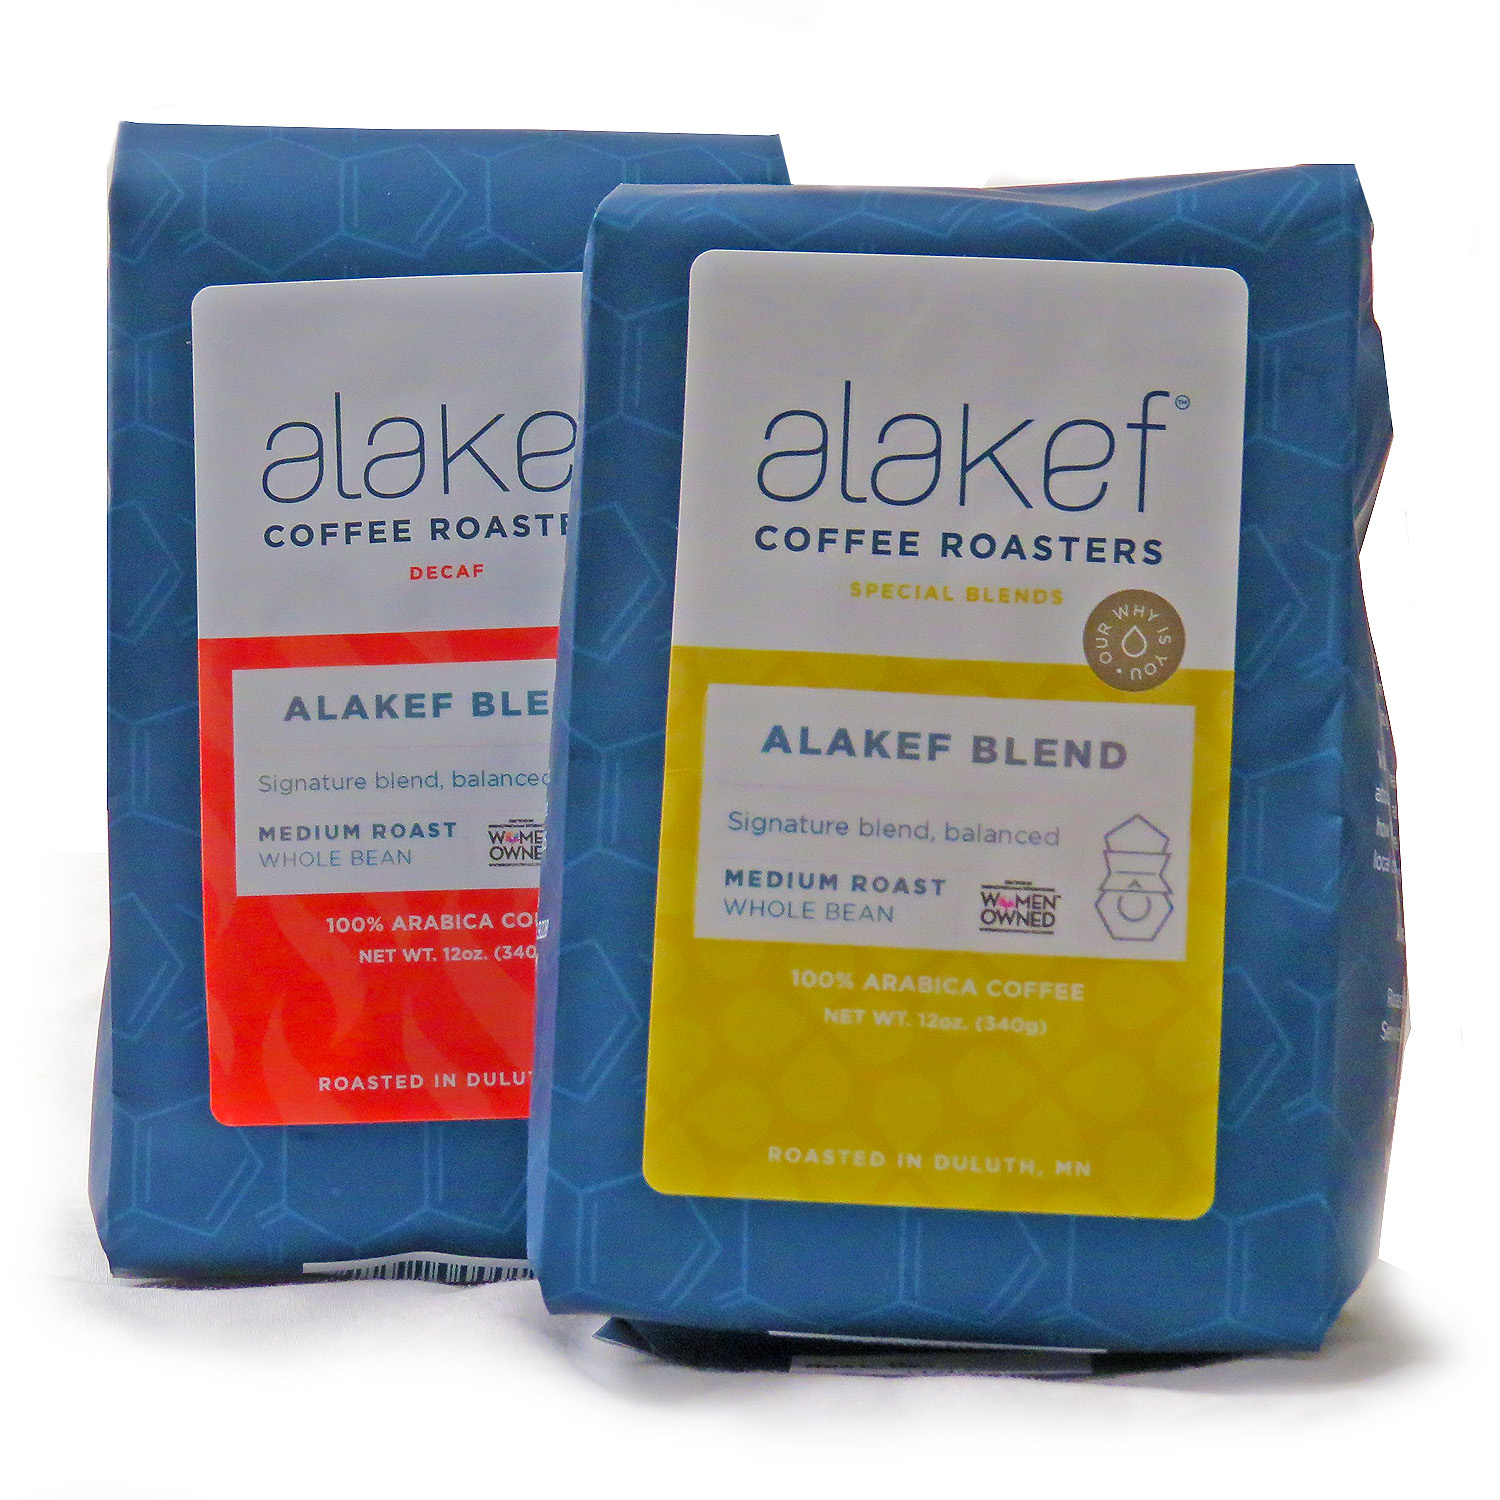 alakef